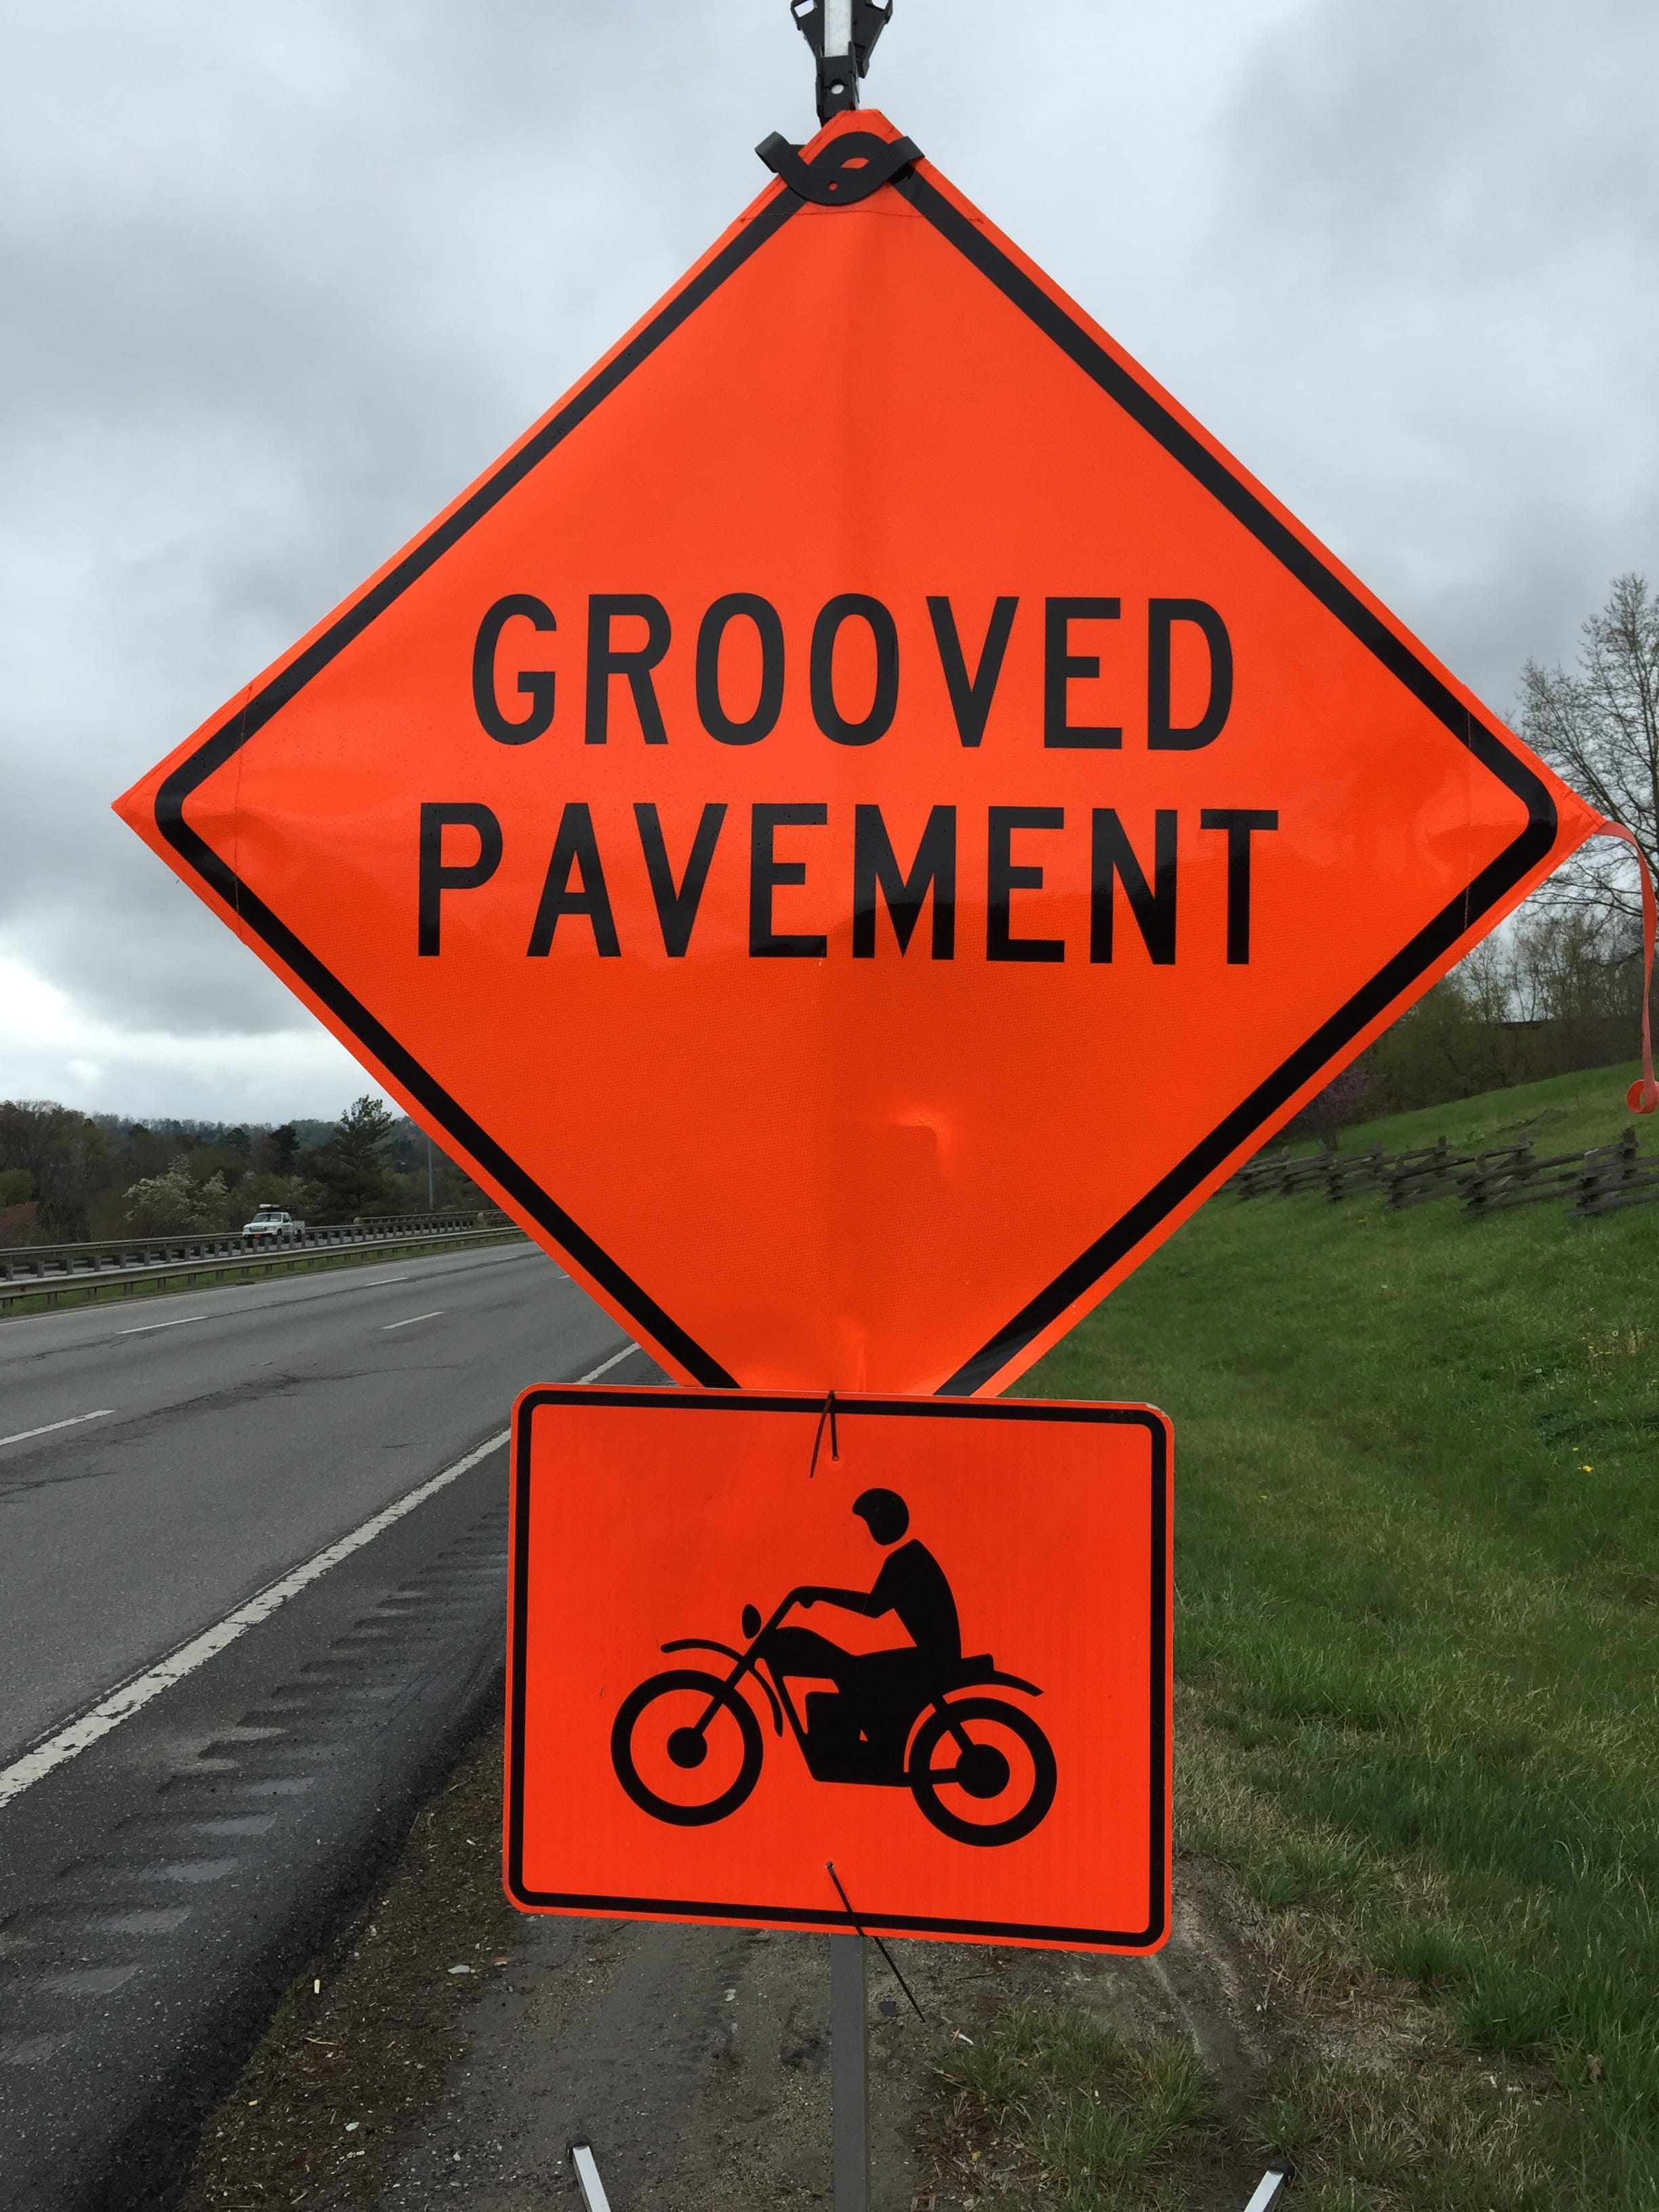 Grooved pavement road sign